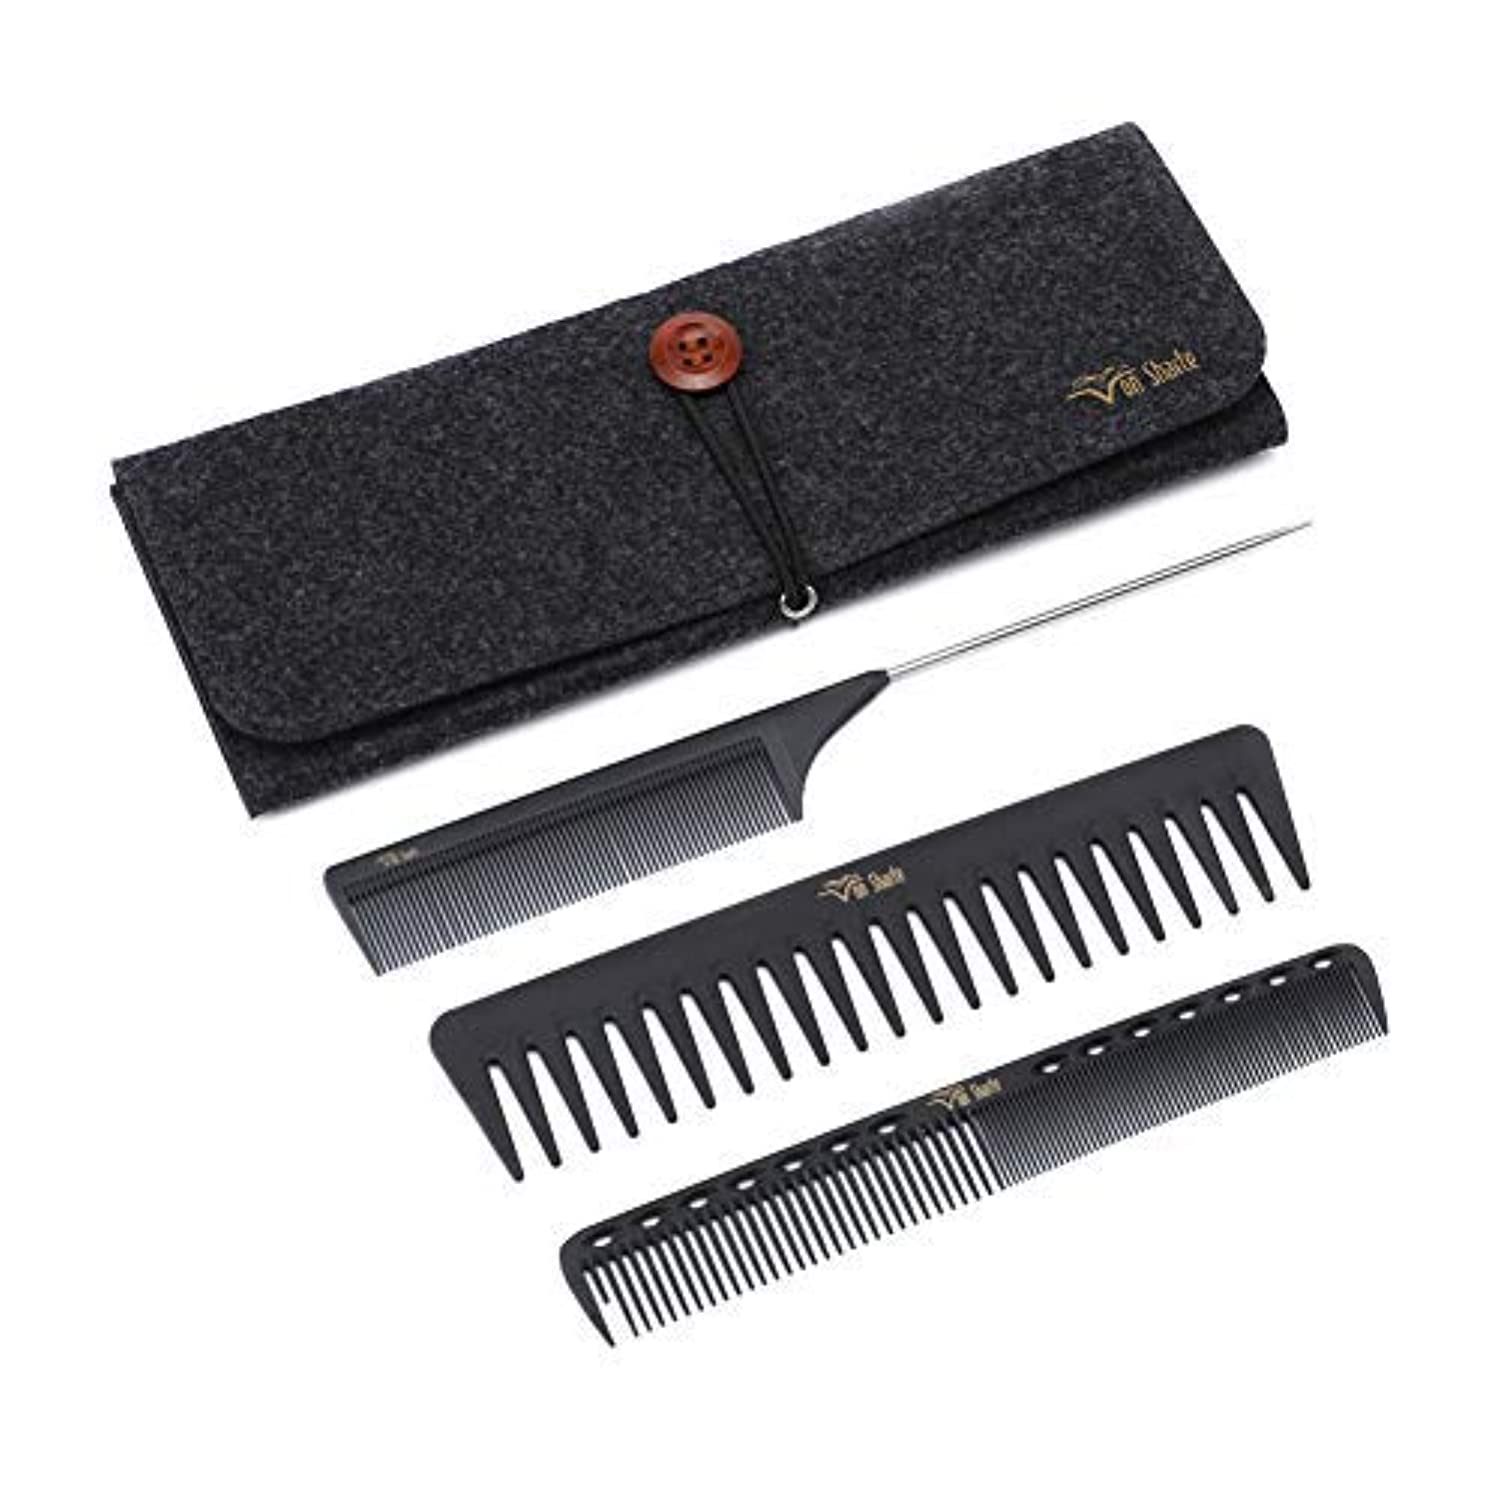 成長するコテージ面Styling Comb Set,Hairdresser Barber Comb Cutting Hair Comb Carbon Fiber Wide Tooth Comb Metal Rat Pin Tail Comb...